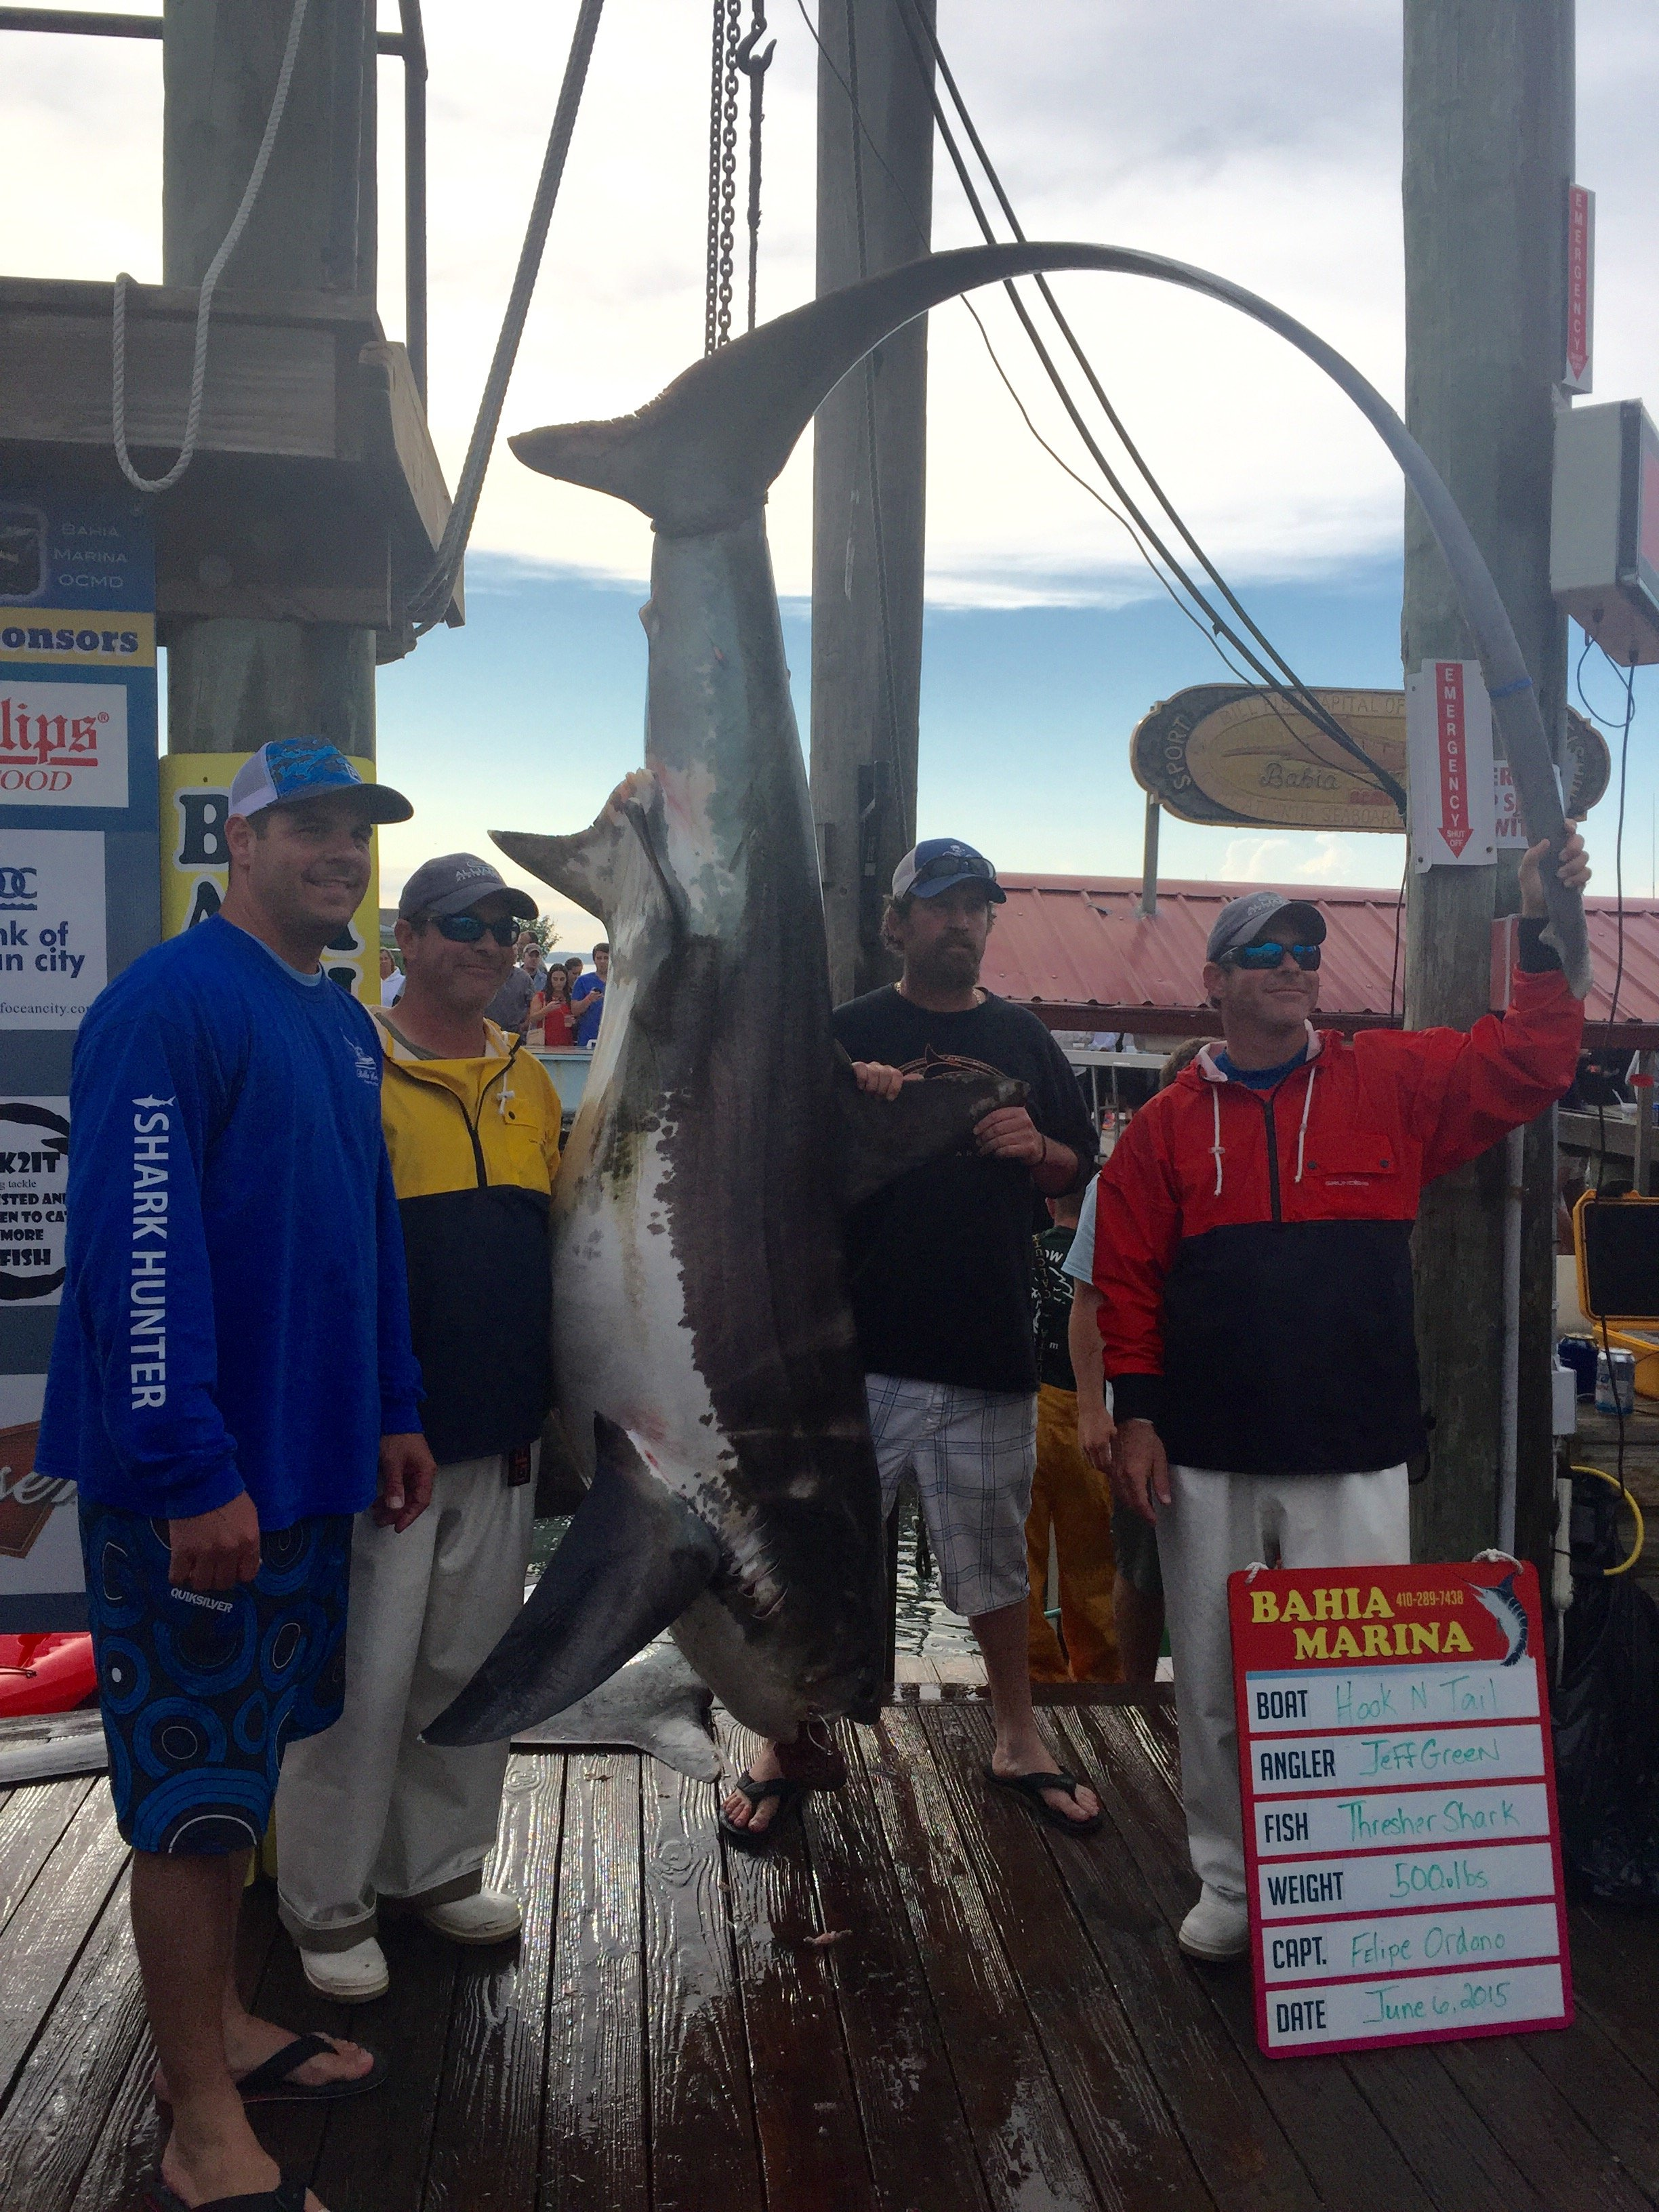 Mako mania day 2 scales thresher sharks ocean city md for Fishing report ocean city md